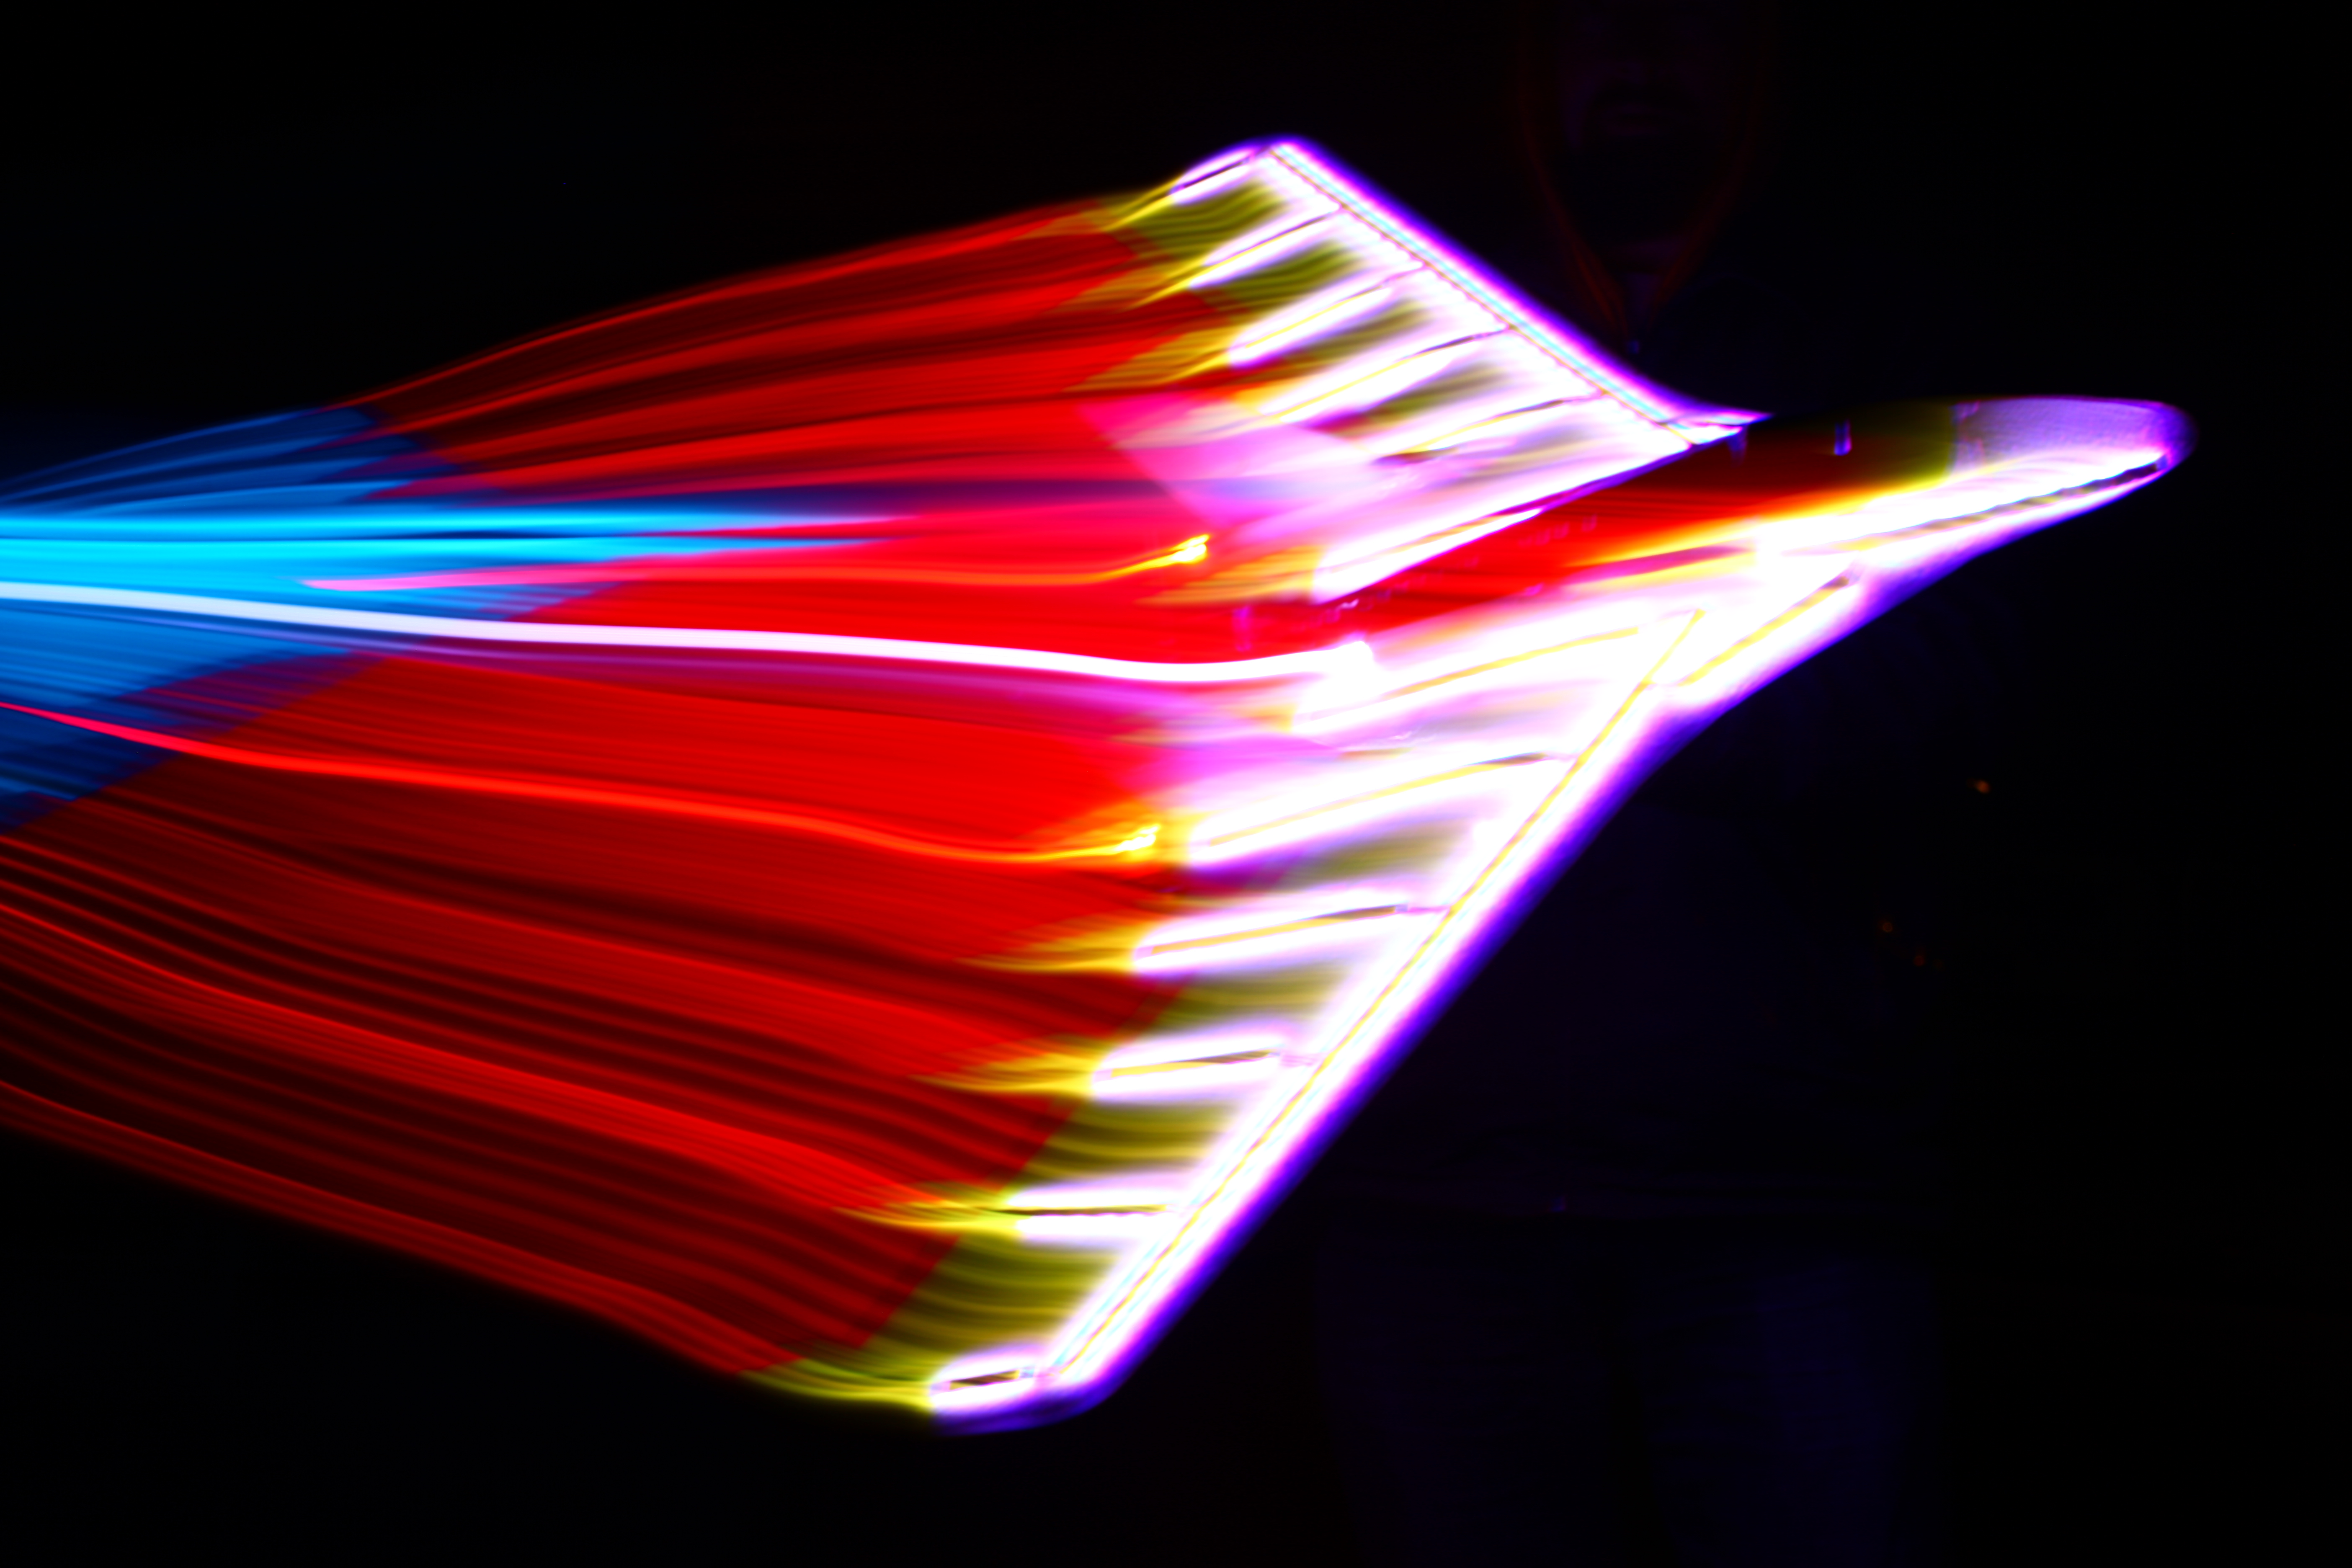 UFO project - Color Changing Glowing Radio Controlled Airplane - RGB LEDs are awesome!